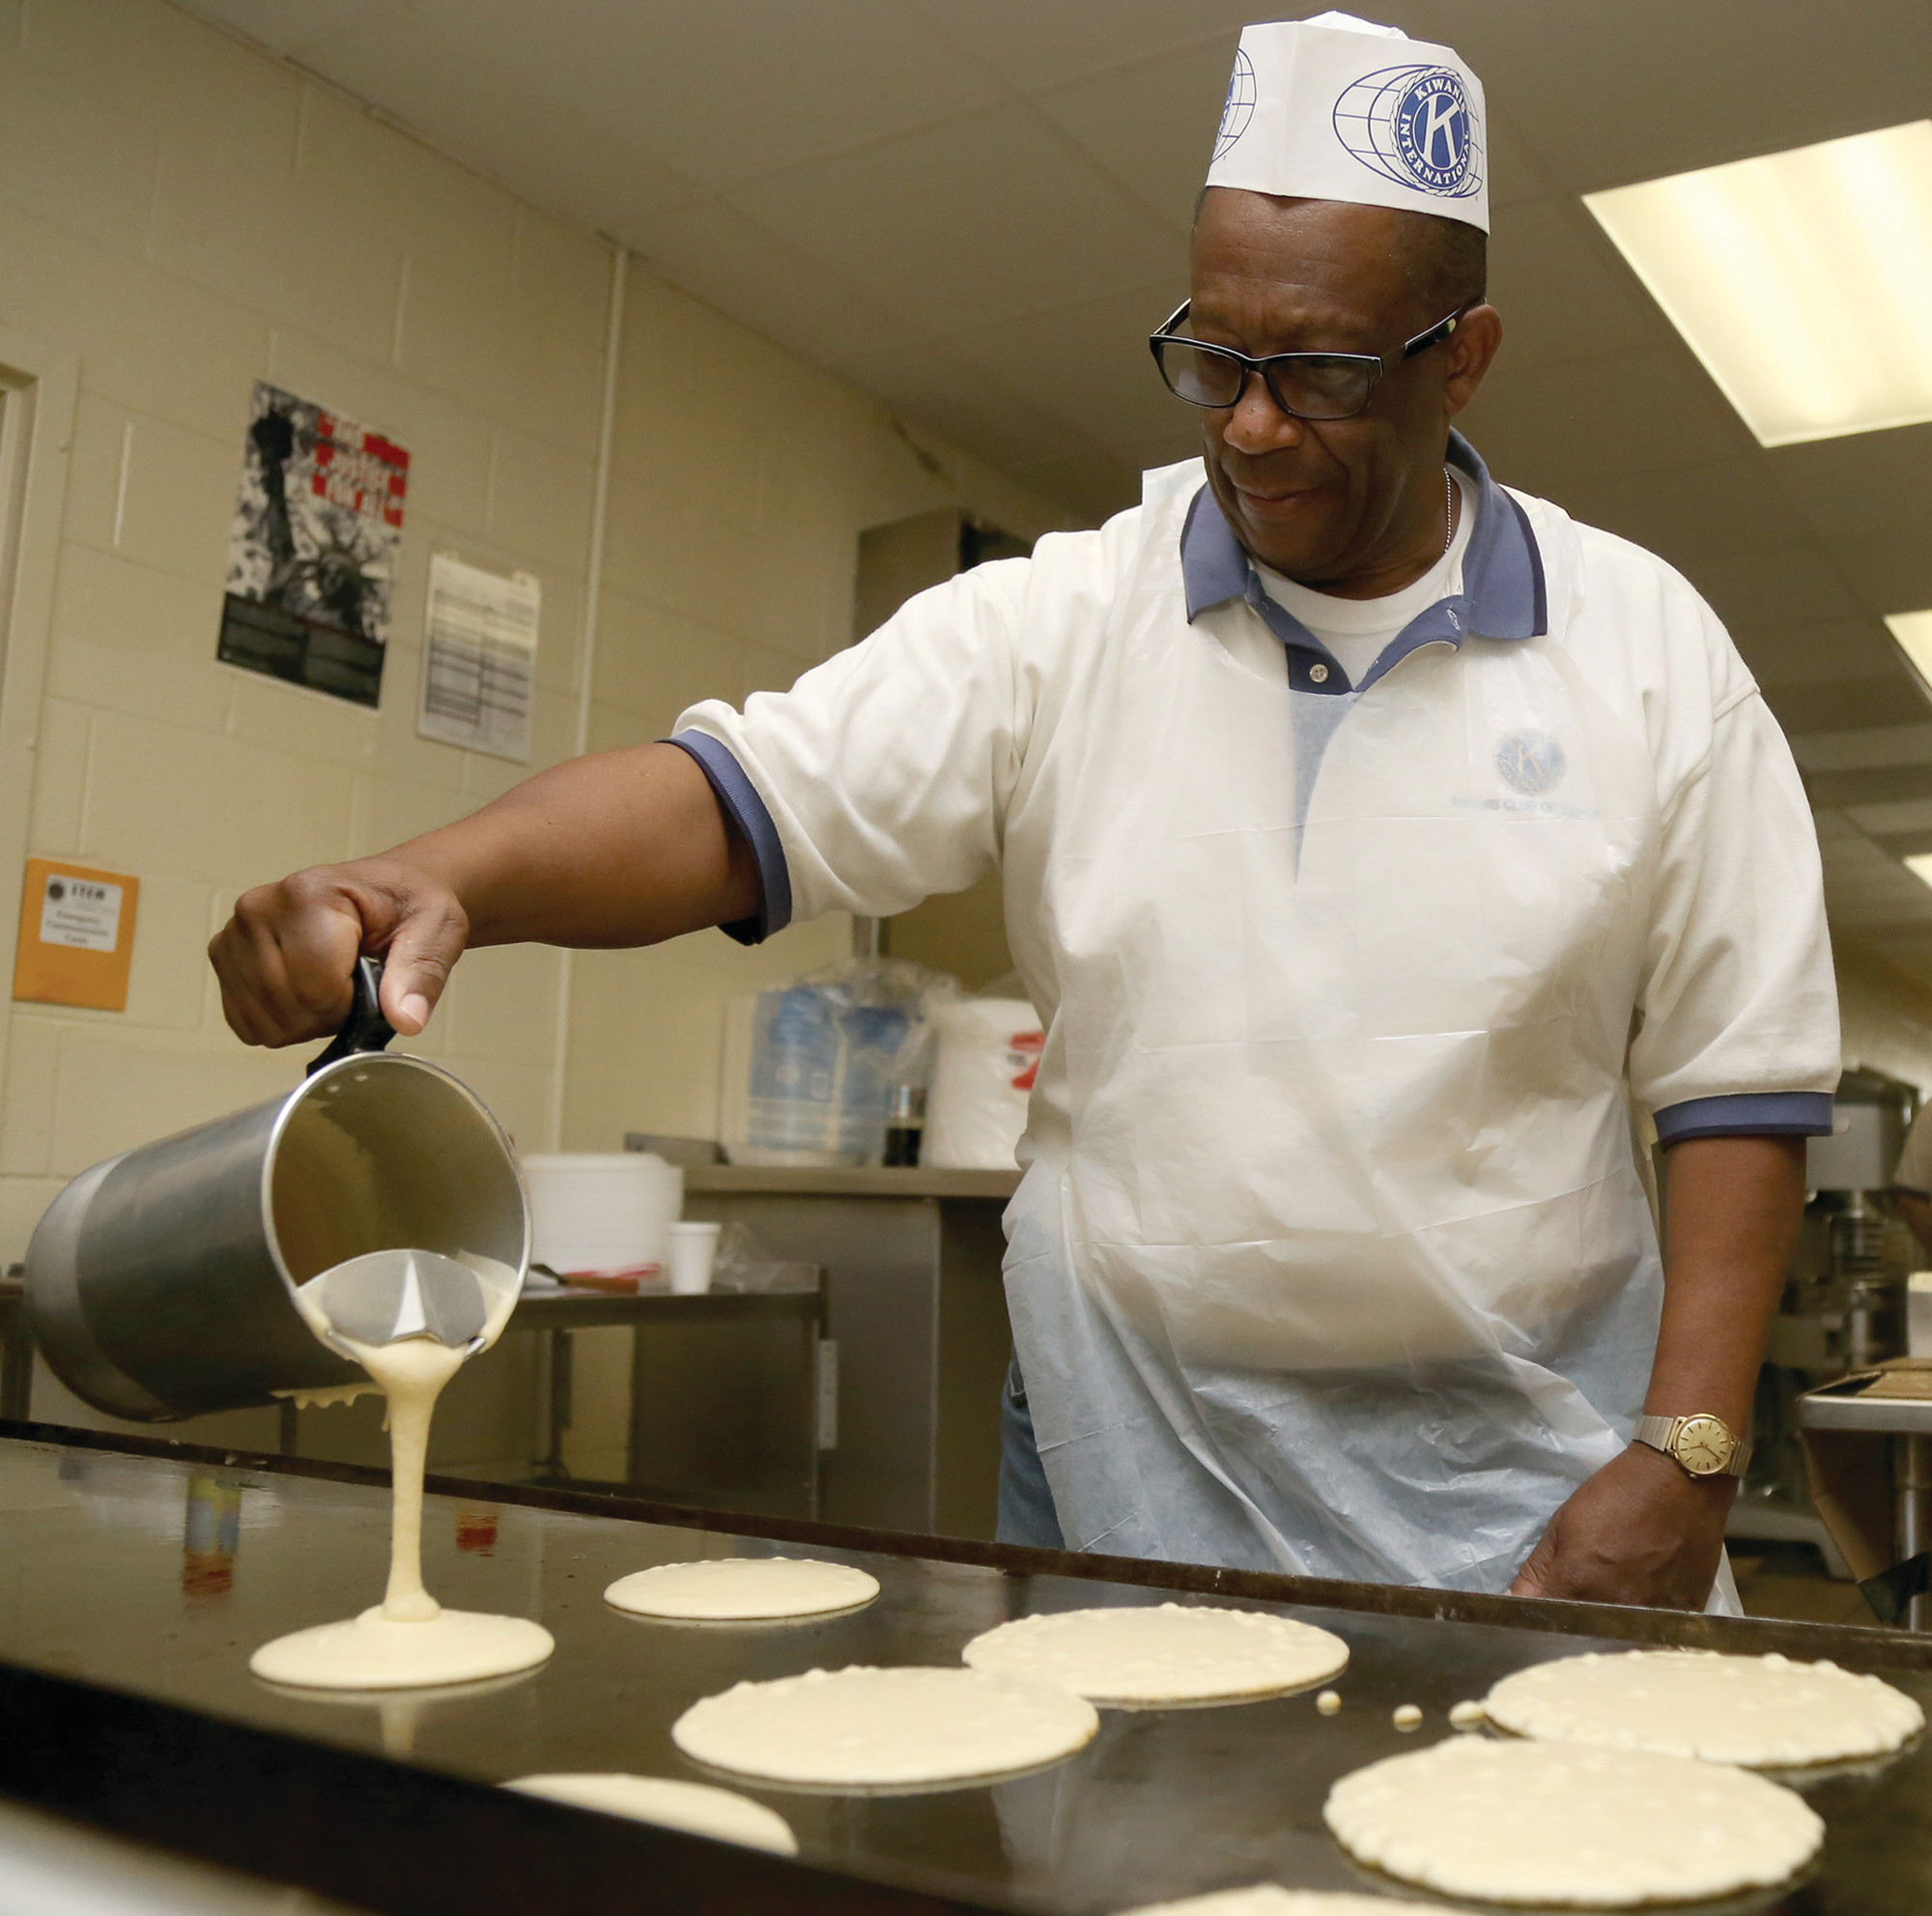 Don Beard pours pancakes at a past Sumter Kiwanis Pancake Day at Alice Drive Middle School. This year's event will be held on Saturday, March 3.